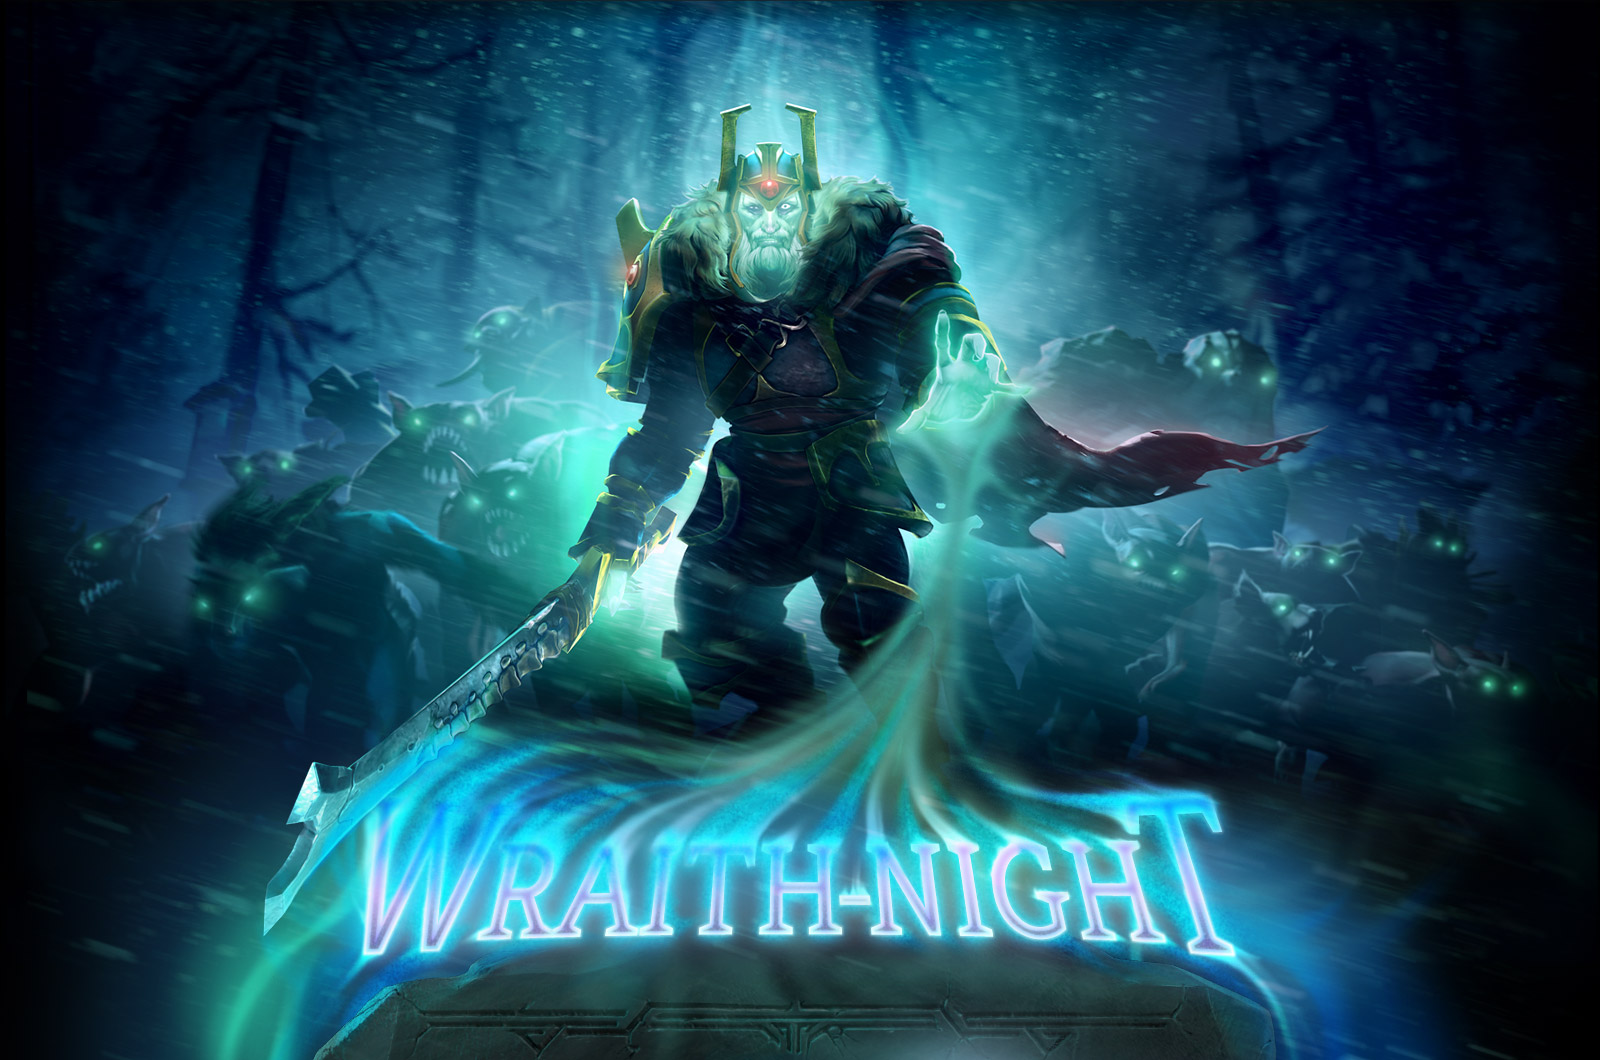 Dota 2 - Wraight-Night: Horde Mode Event, New Hero, Ranked Matches